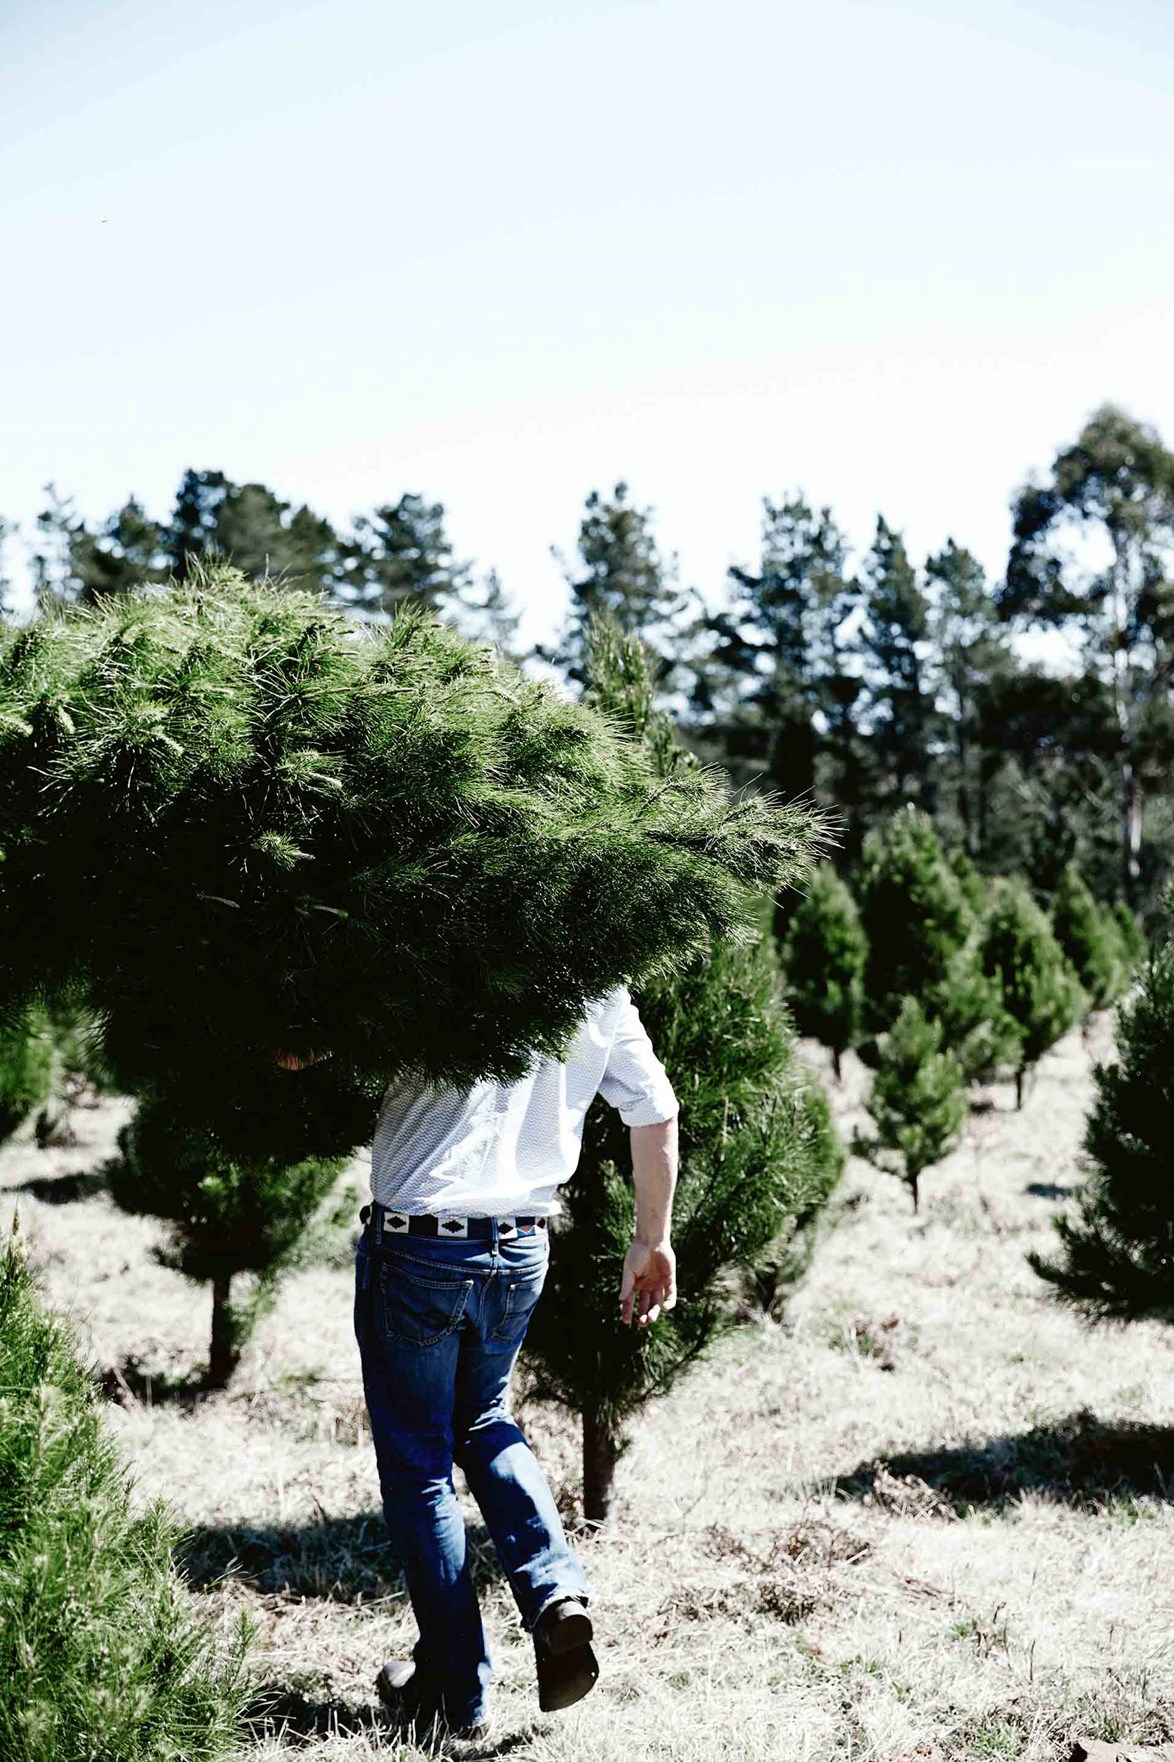 October to December is peak season for Christmas Tree Man, when up to 15,000 trees are cut and delivered to a mix of wholesale and retail customers.